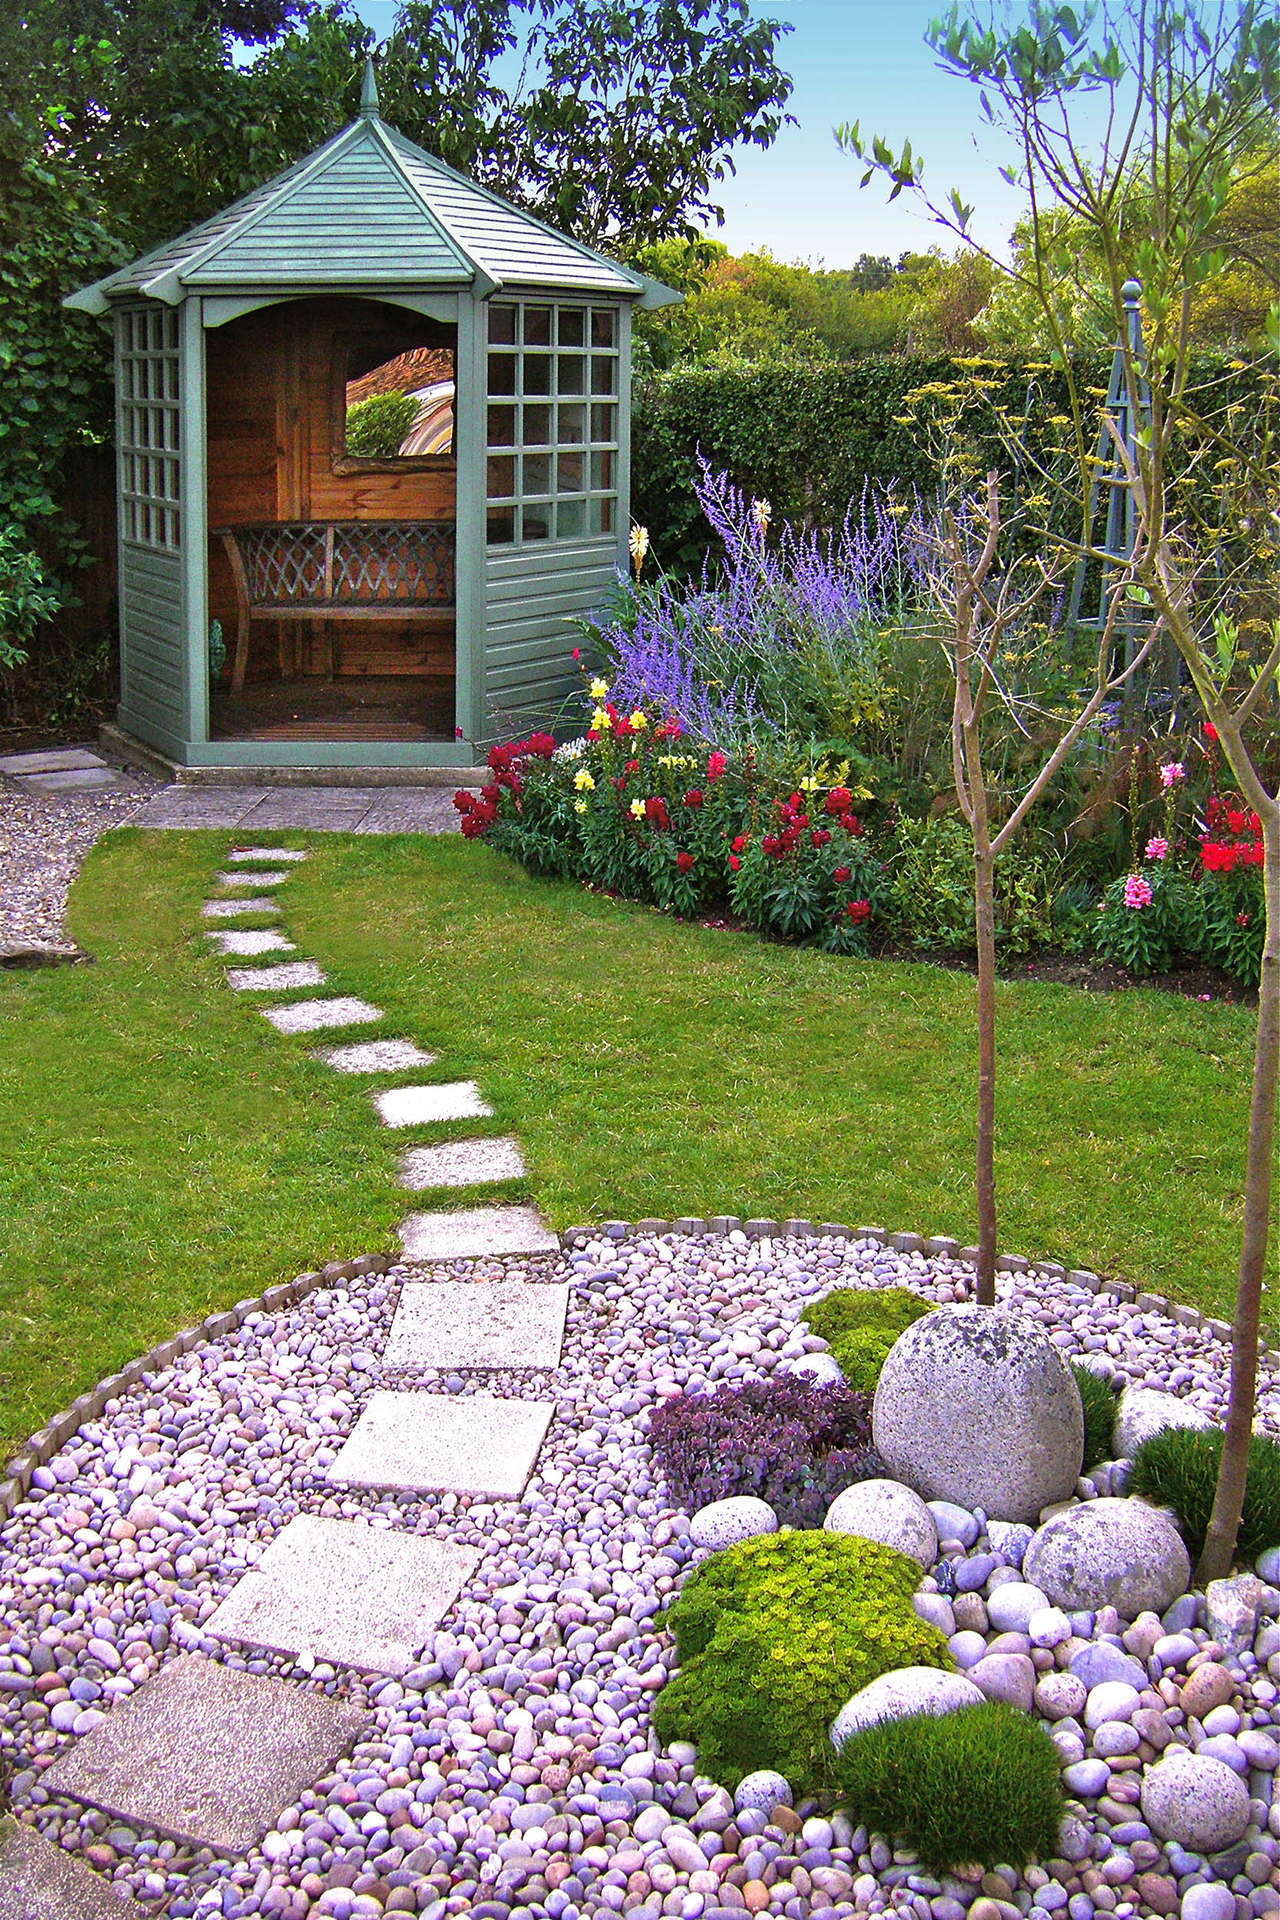 50 Best Backyard Landscaping Ideas And Designs In 2019 for Landscaped Backyards Pictures